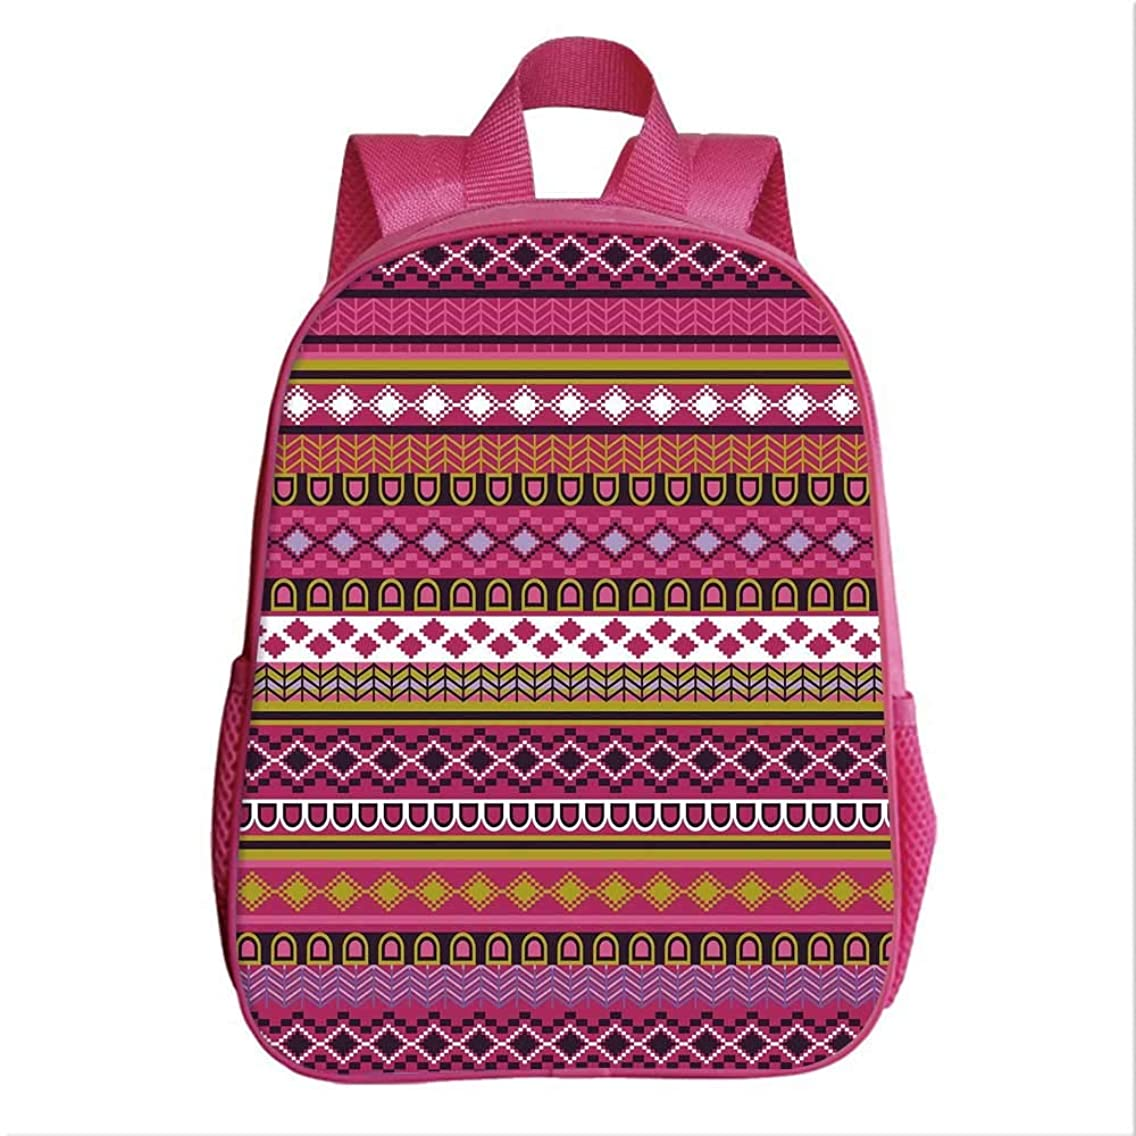 Pink Backpack Bookbag,Traditional African Motifs and Borders Ethnic Tribal Accents Vintage Native Folk Art Decorative for Kindergarten Child,9.4''Lx4.7''Wx11.8''H